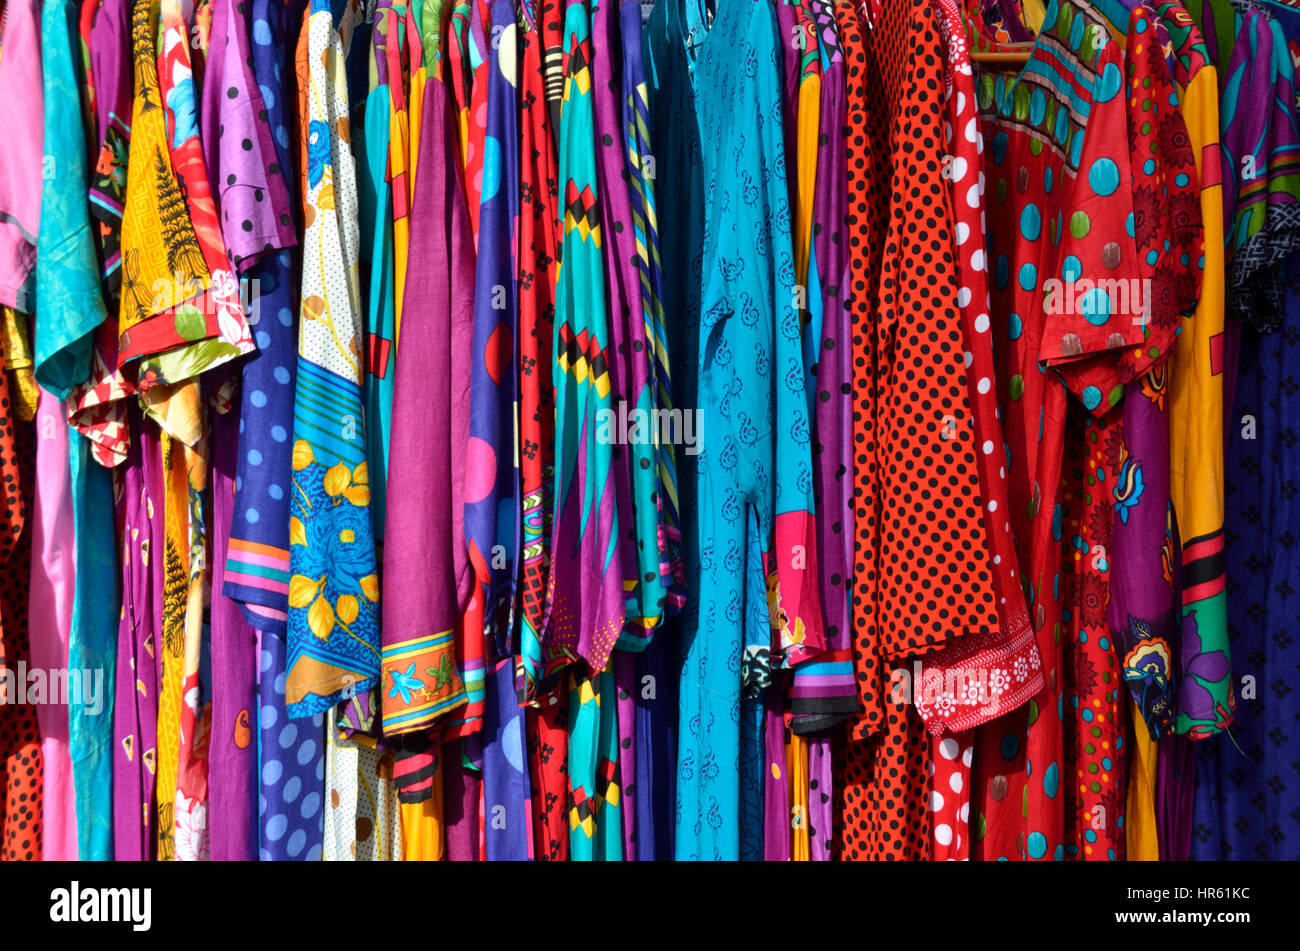 Indian sari dresses on display outside a shop. - Stock Image